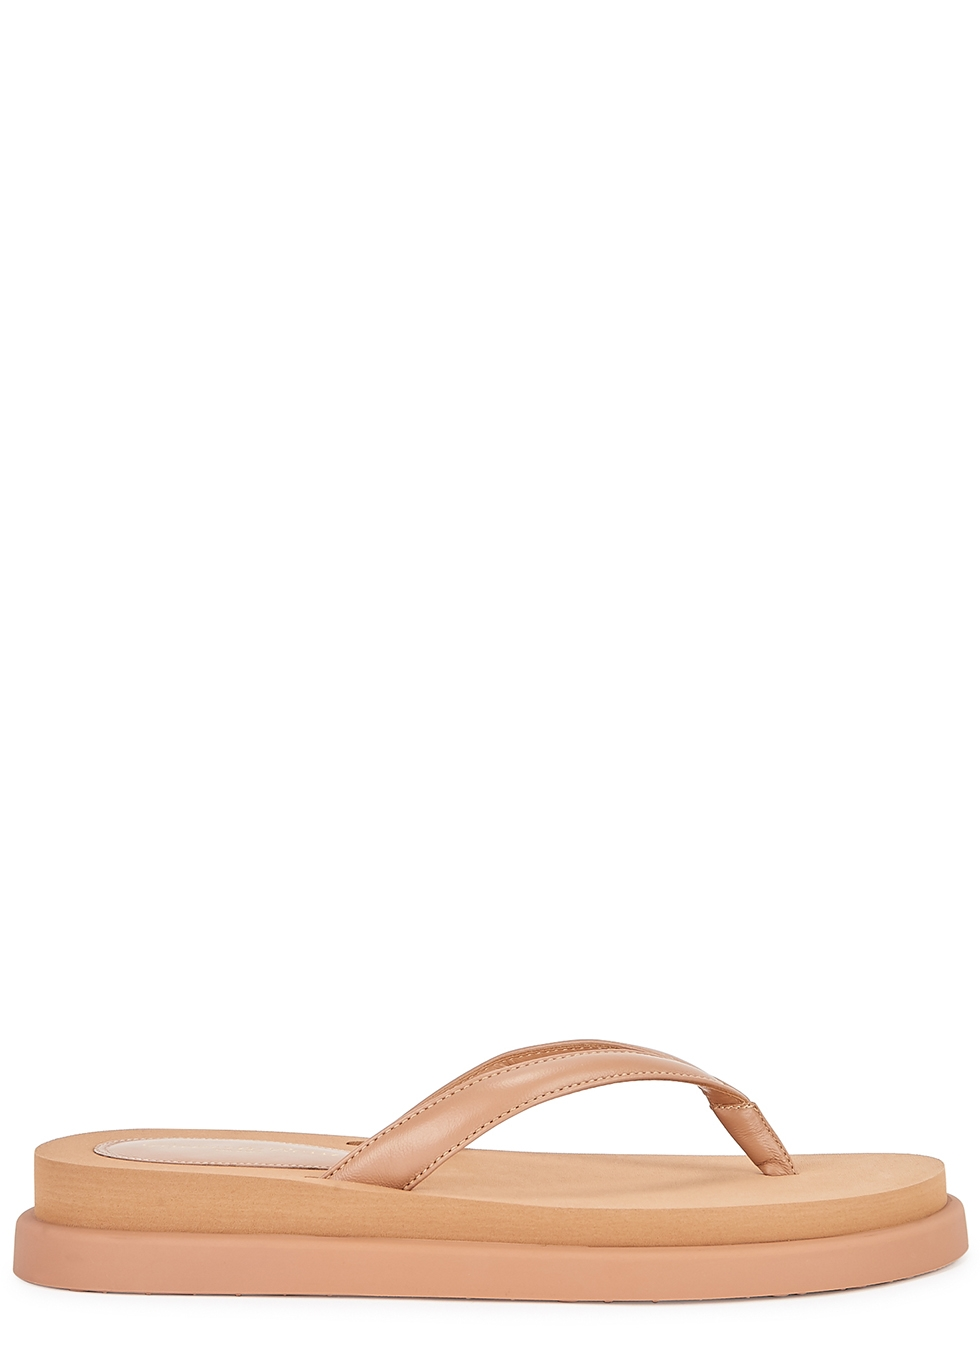 Marlin dusky pink leather thong sandals